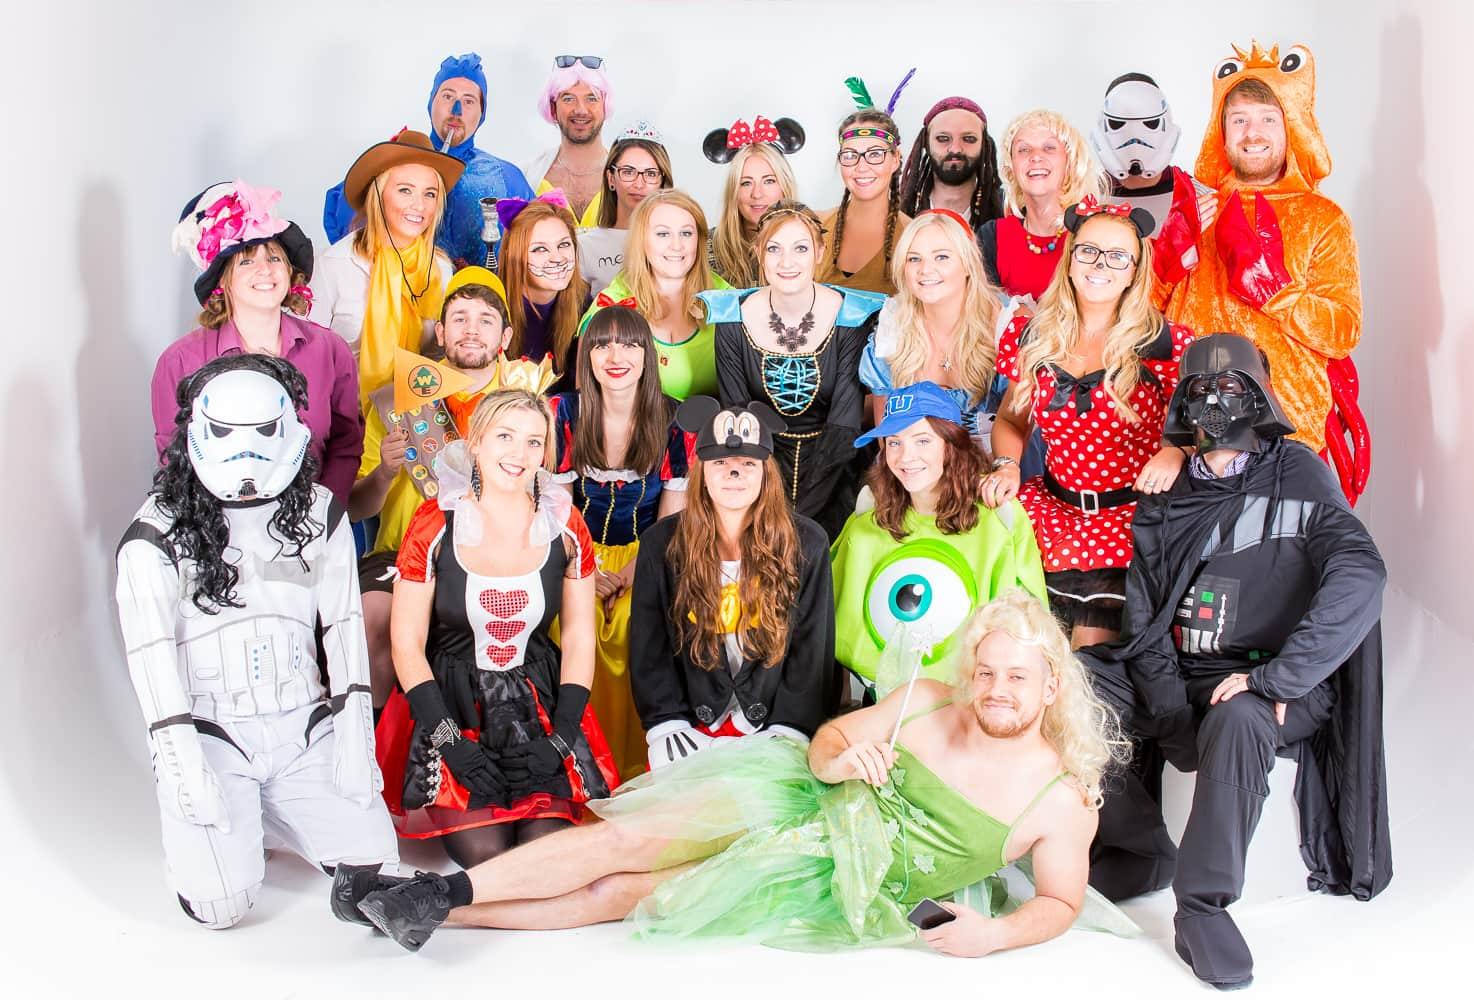 The staff at LNOF posing for a group shot in their Disney Day outfits